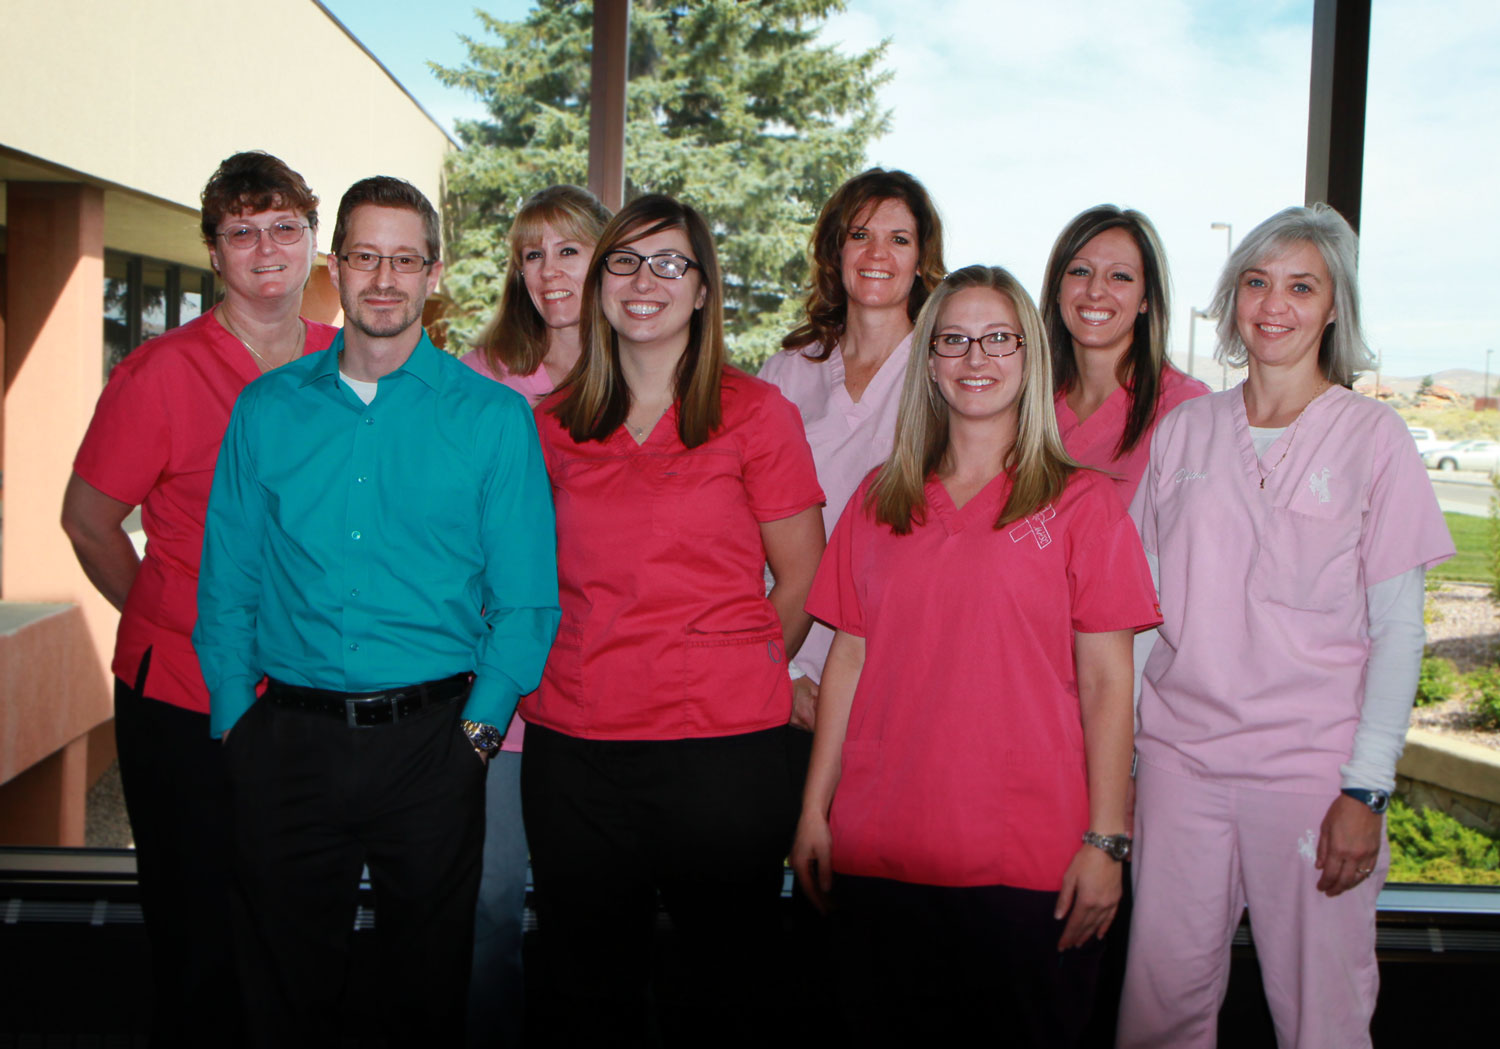 Memorial Hospital honors Breast Cancer Awareness month with a PINK photo contest and raffle for mammography patients